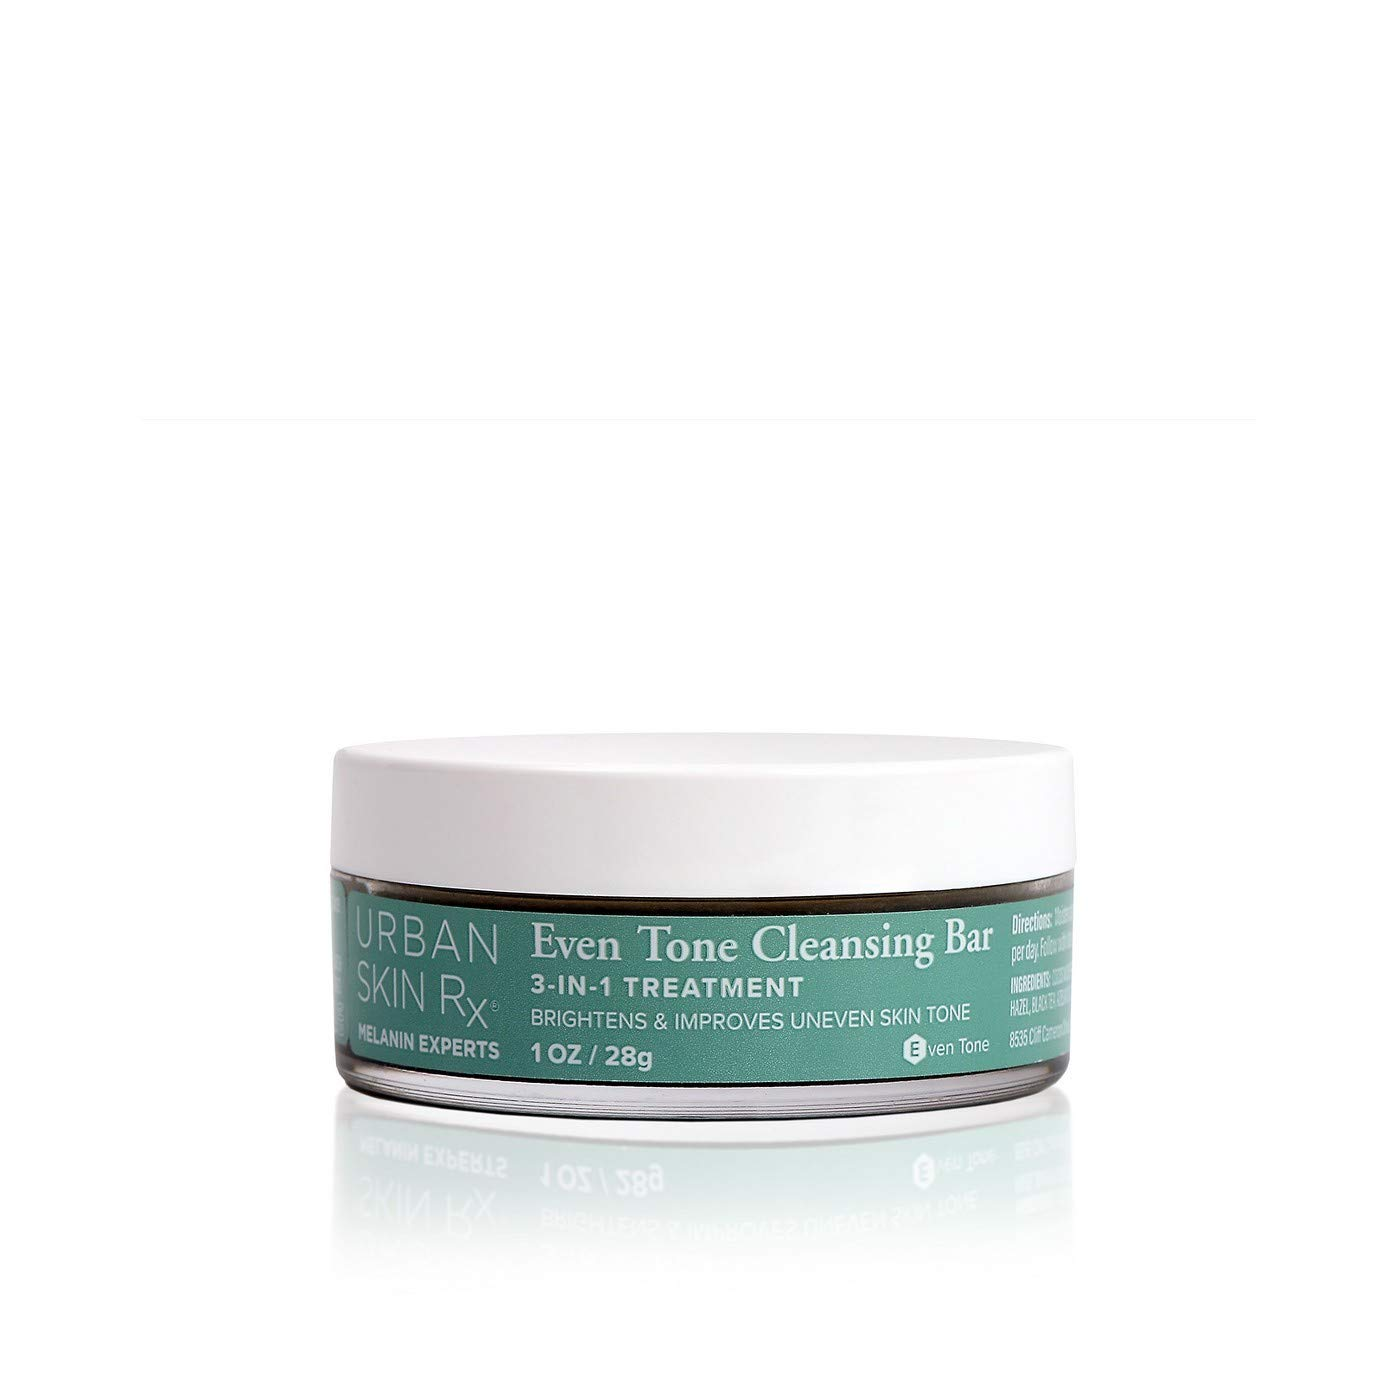 Urban Skin Rx 3 in 1 Even Tone Facial Cleansing Bar 1oz, pack of 1